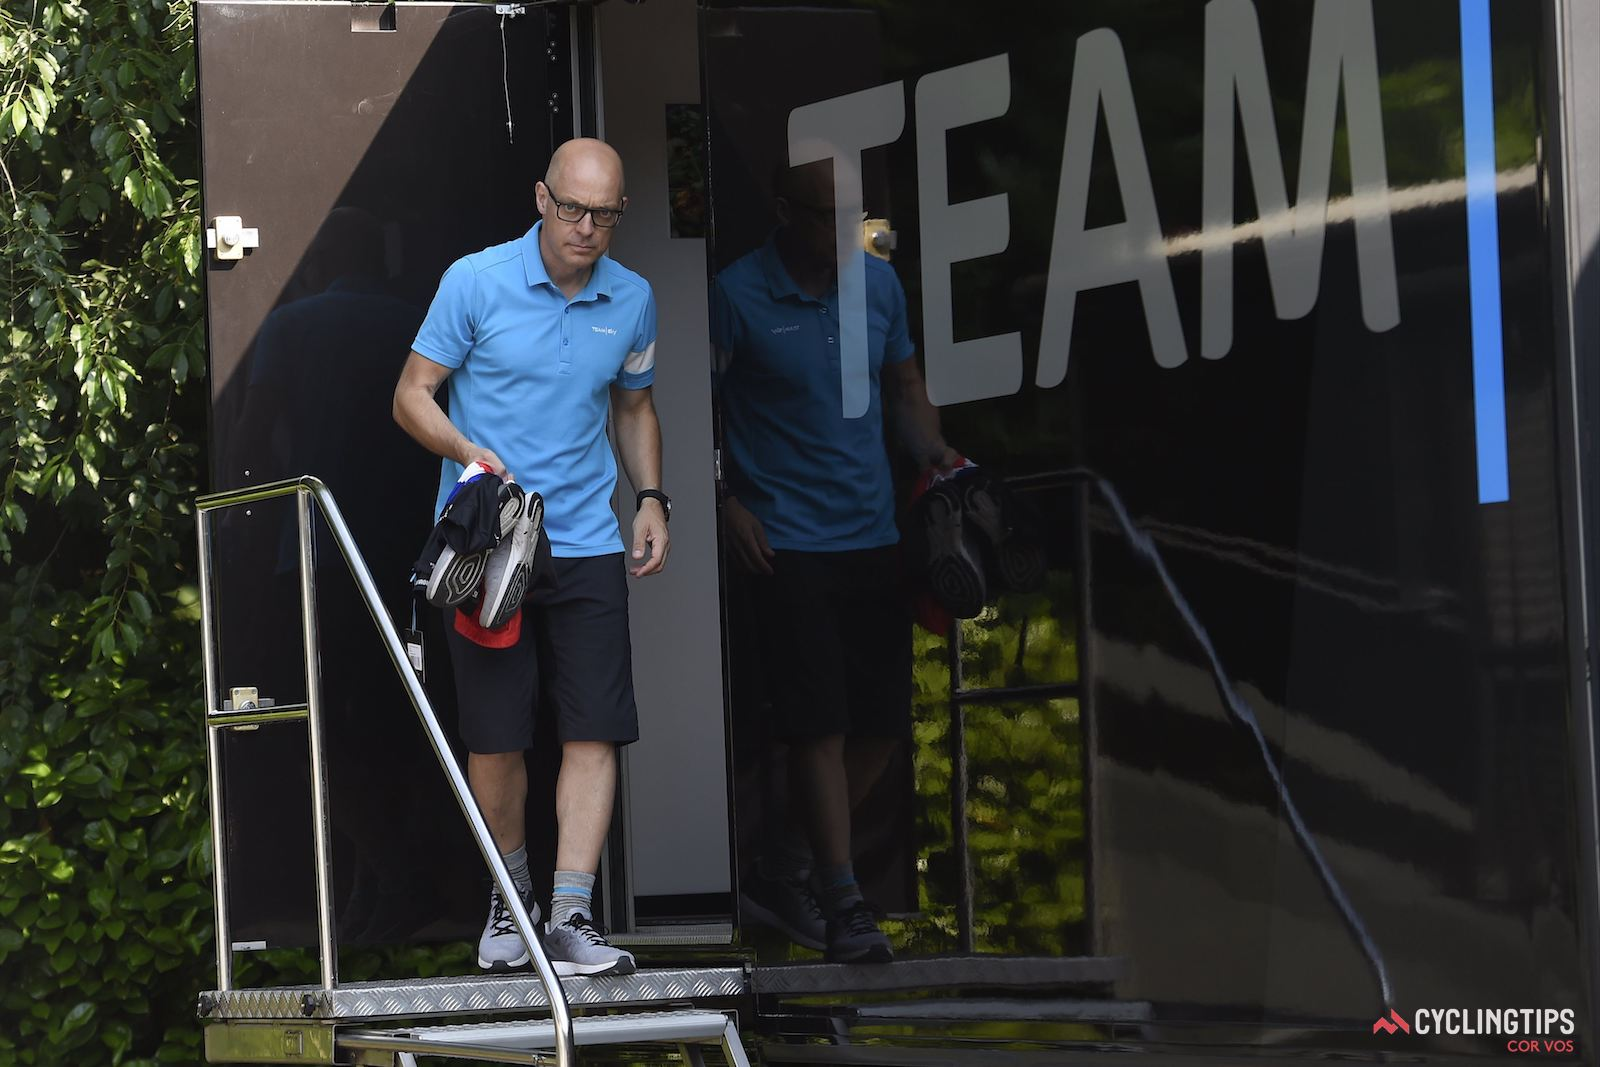 Dave Brailsford has led Team Sky since its inception in 2009, with four Tour de France victories by two riders over the past five years. However he's also been responsible for actions, and PR disasters, that have severely undermined the team's credibility. Is it time for him to step aside? Photo: Cor Vos.